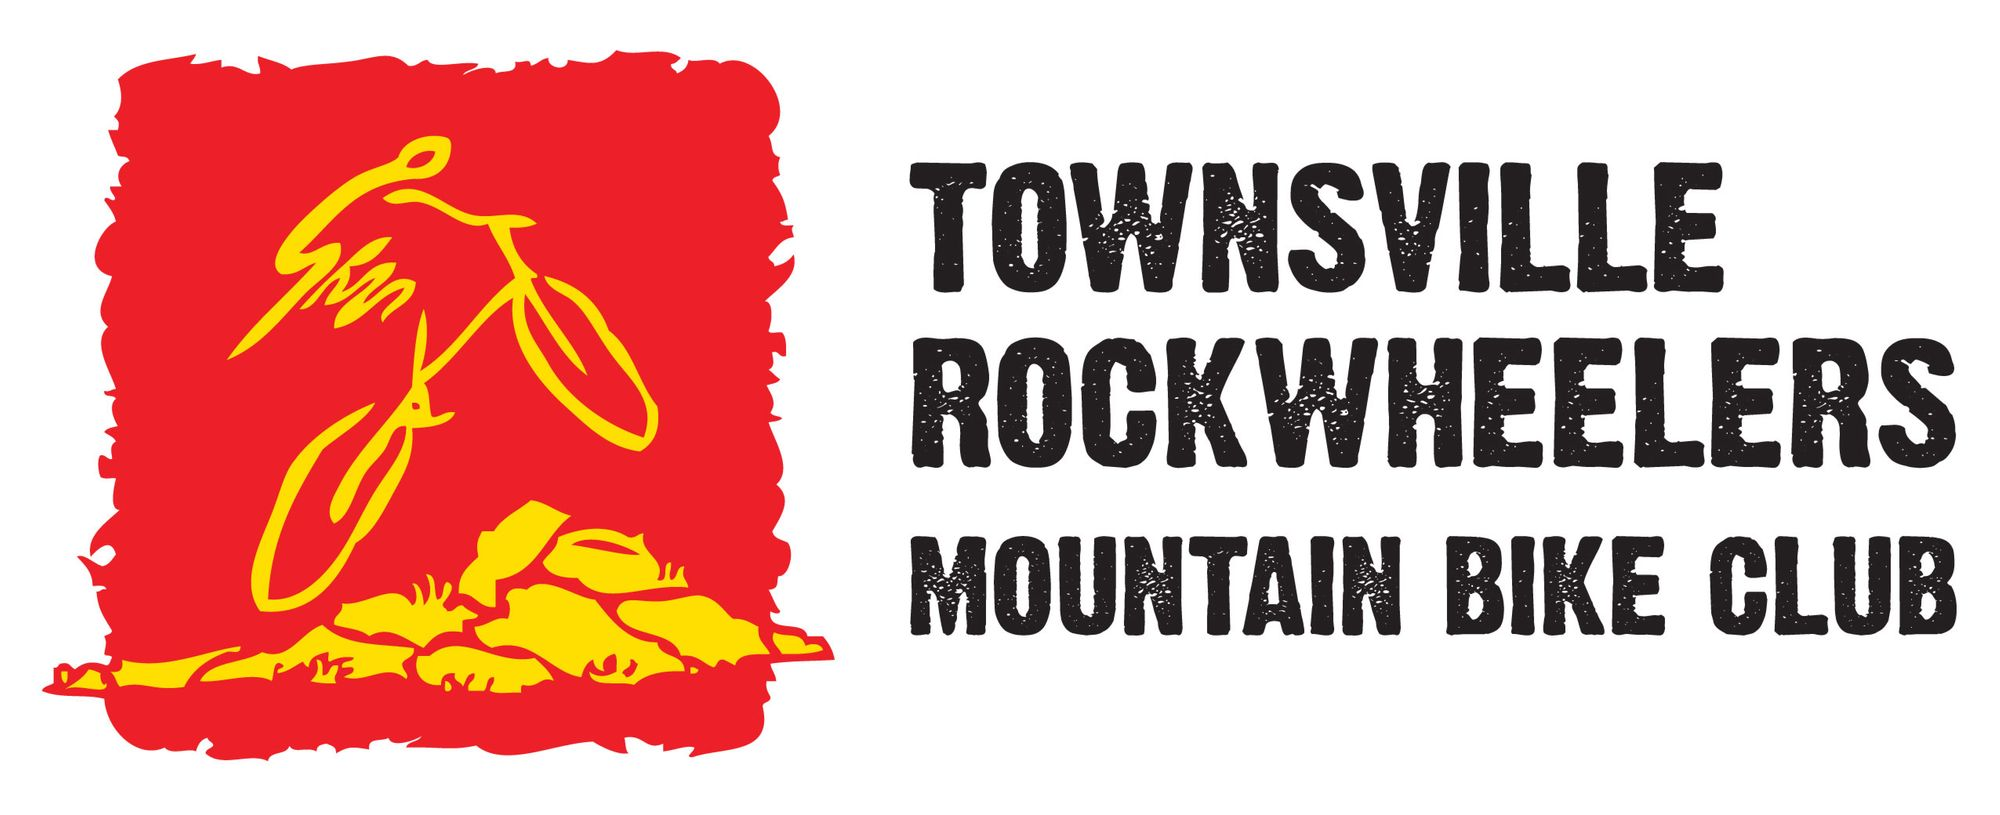 Townsville Rockwheelers Mountain Bike Club logo